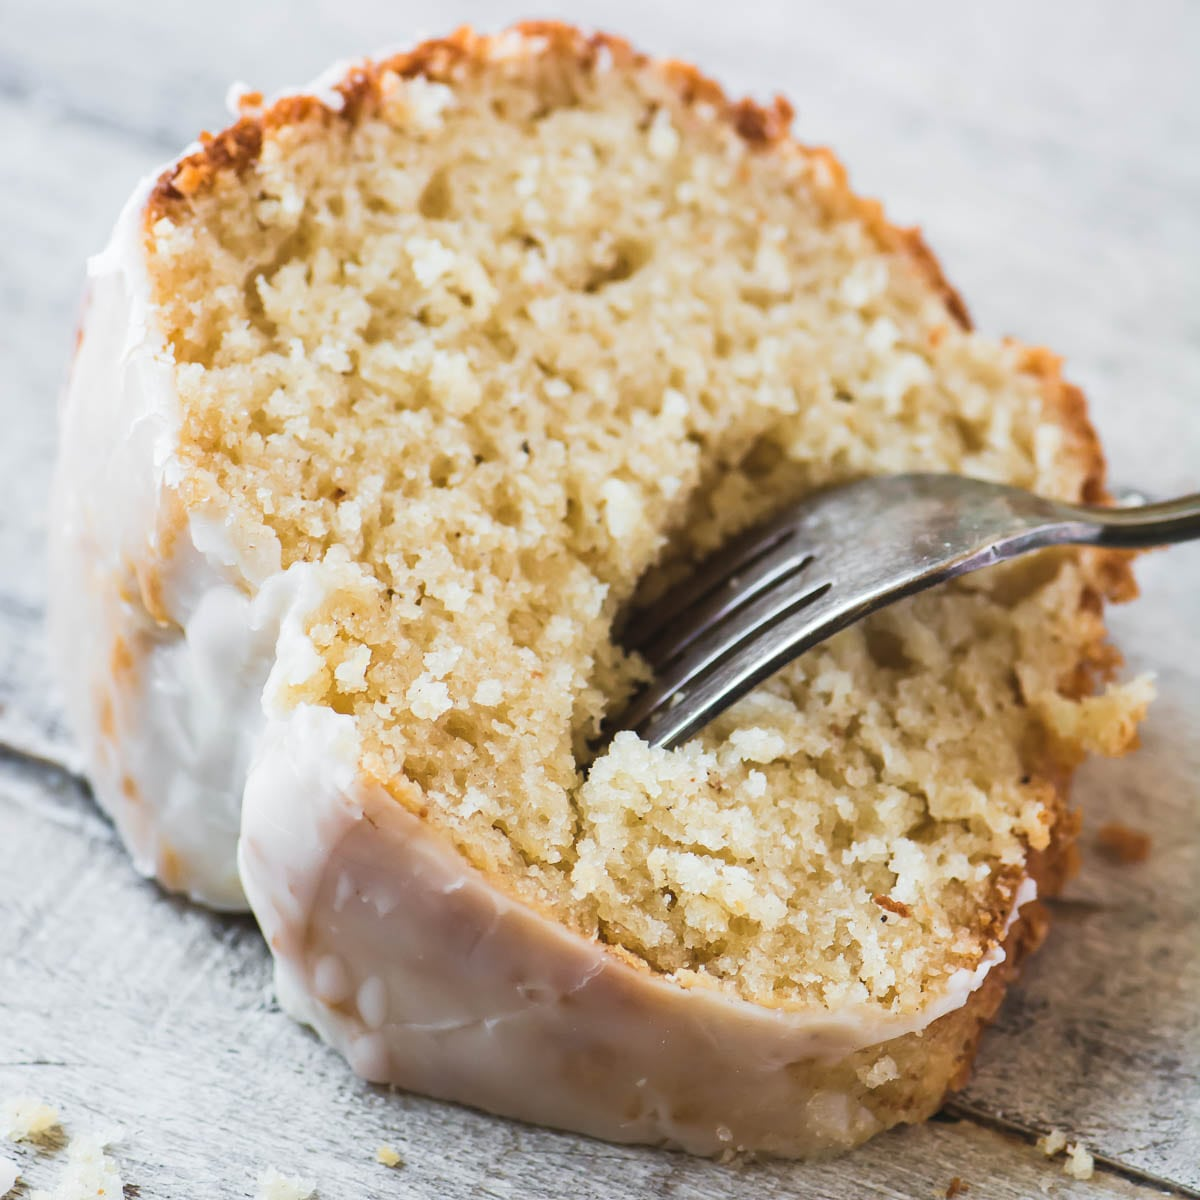 A slice of Glazed Old Fashioned Doughnut Bundt Cake with a fork